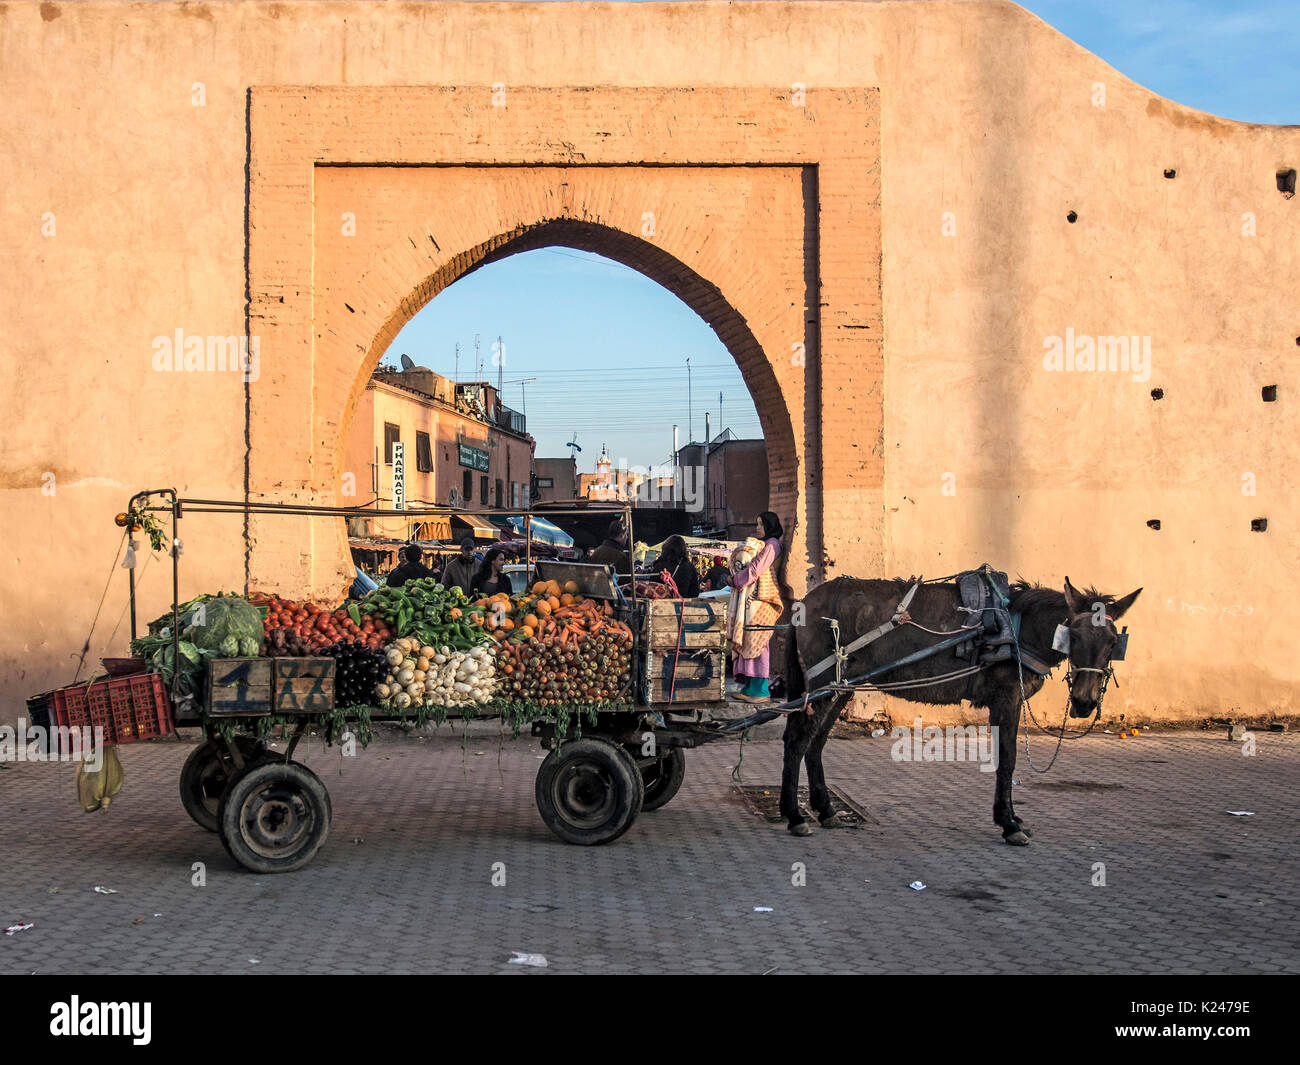 MARRAKESH, MOROCCO:  Donkey drawn cart with load of vegetables by a Gate in the City walls Stock Photo